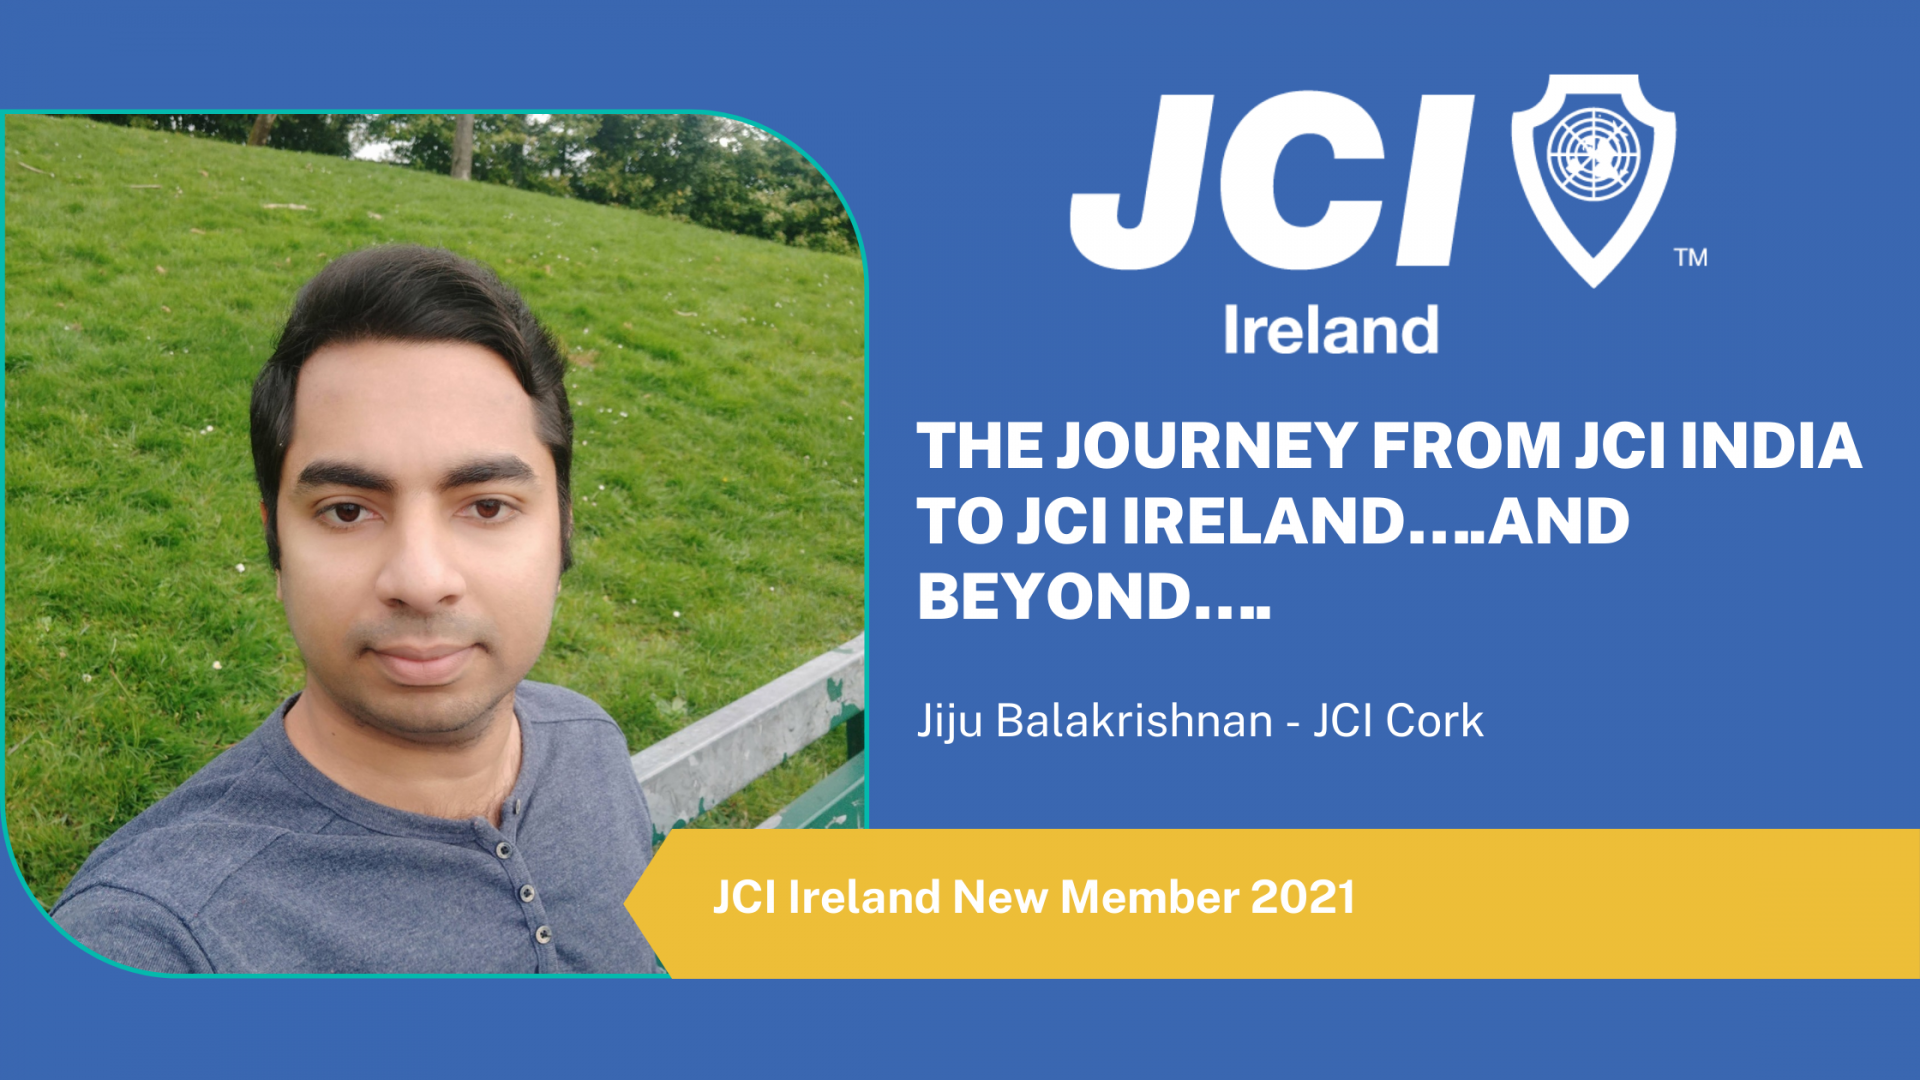 The journey from JCI India to JCI Ireland.and beyond.